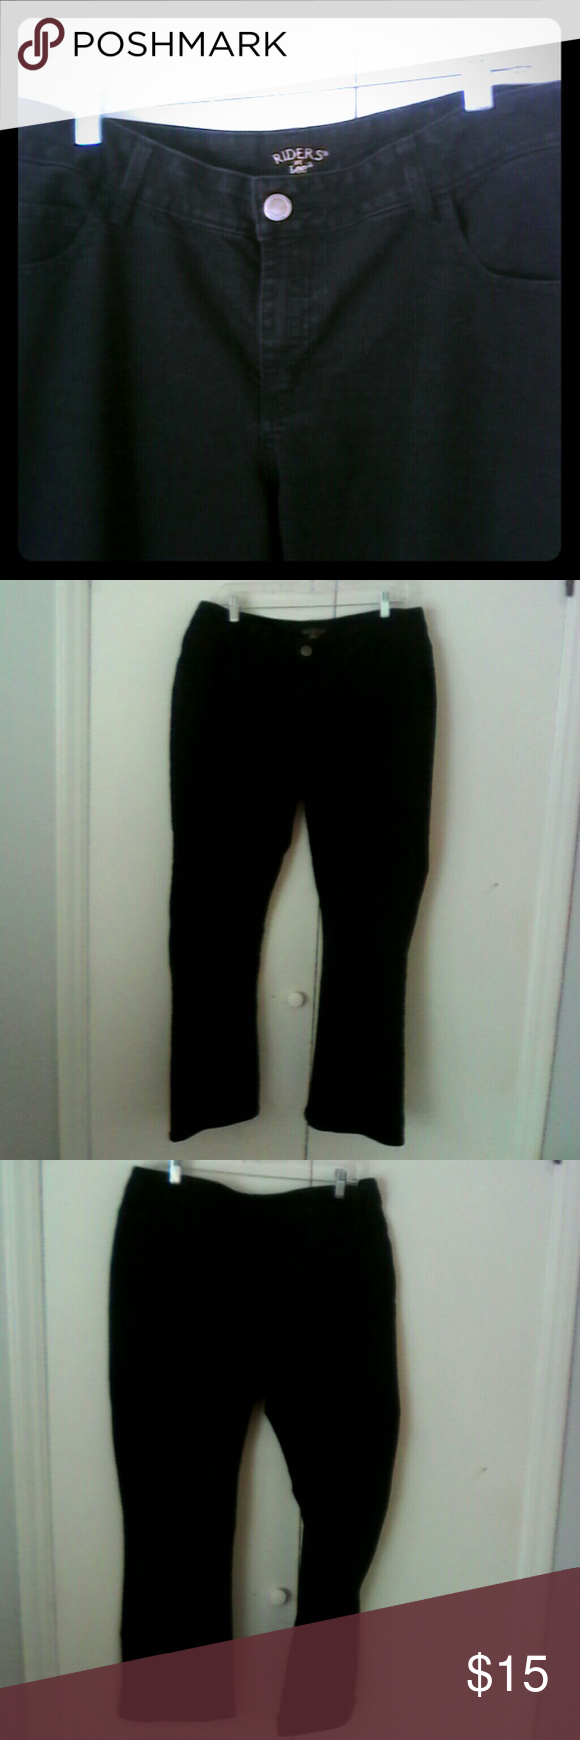 Lee Riders Black Stretch Jeans 16W Womans Plus This is a pair of jeans by Lee Riders in a size 16W medium Cotton polyester spandex stretch material 5 pocket style Straight leg Black in color In excellent used condition Lee Riders Jeans Straight Leg